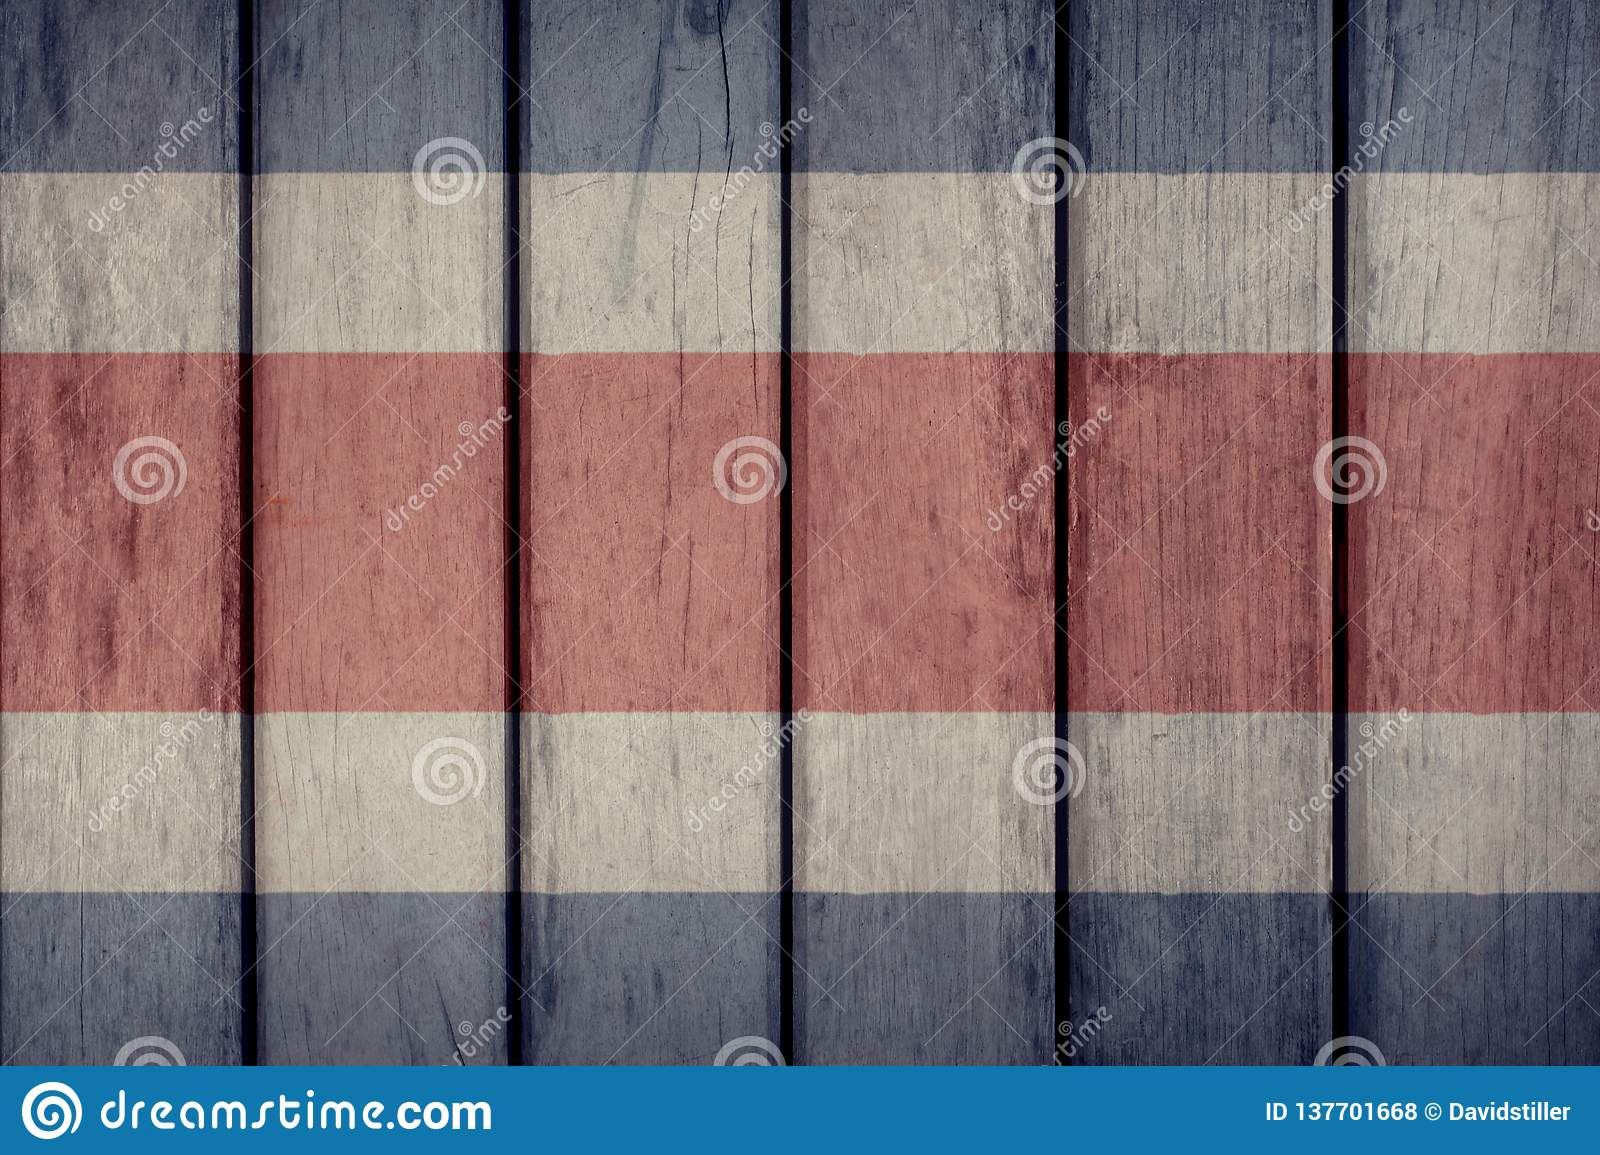 Costa Rica Flag Wooden Fence